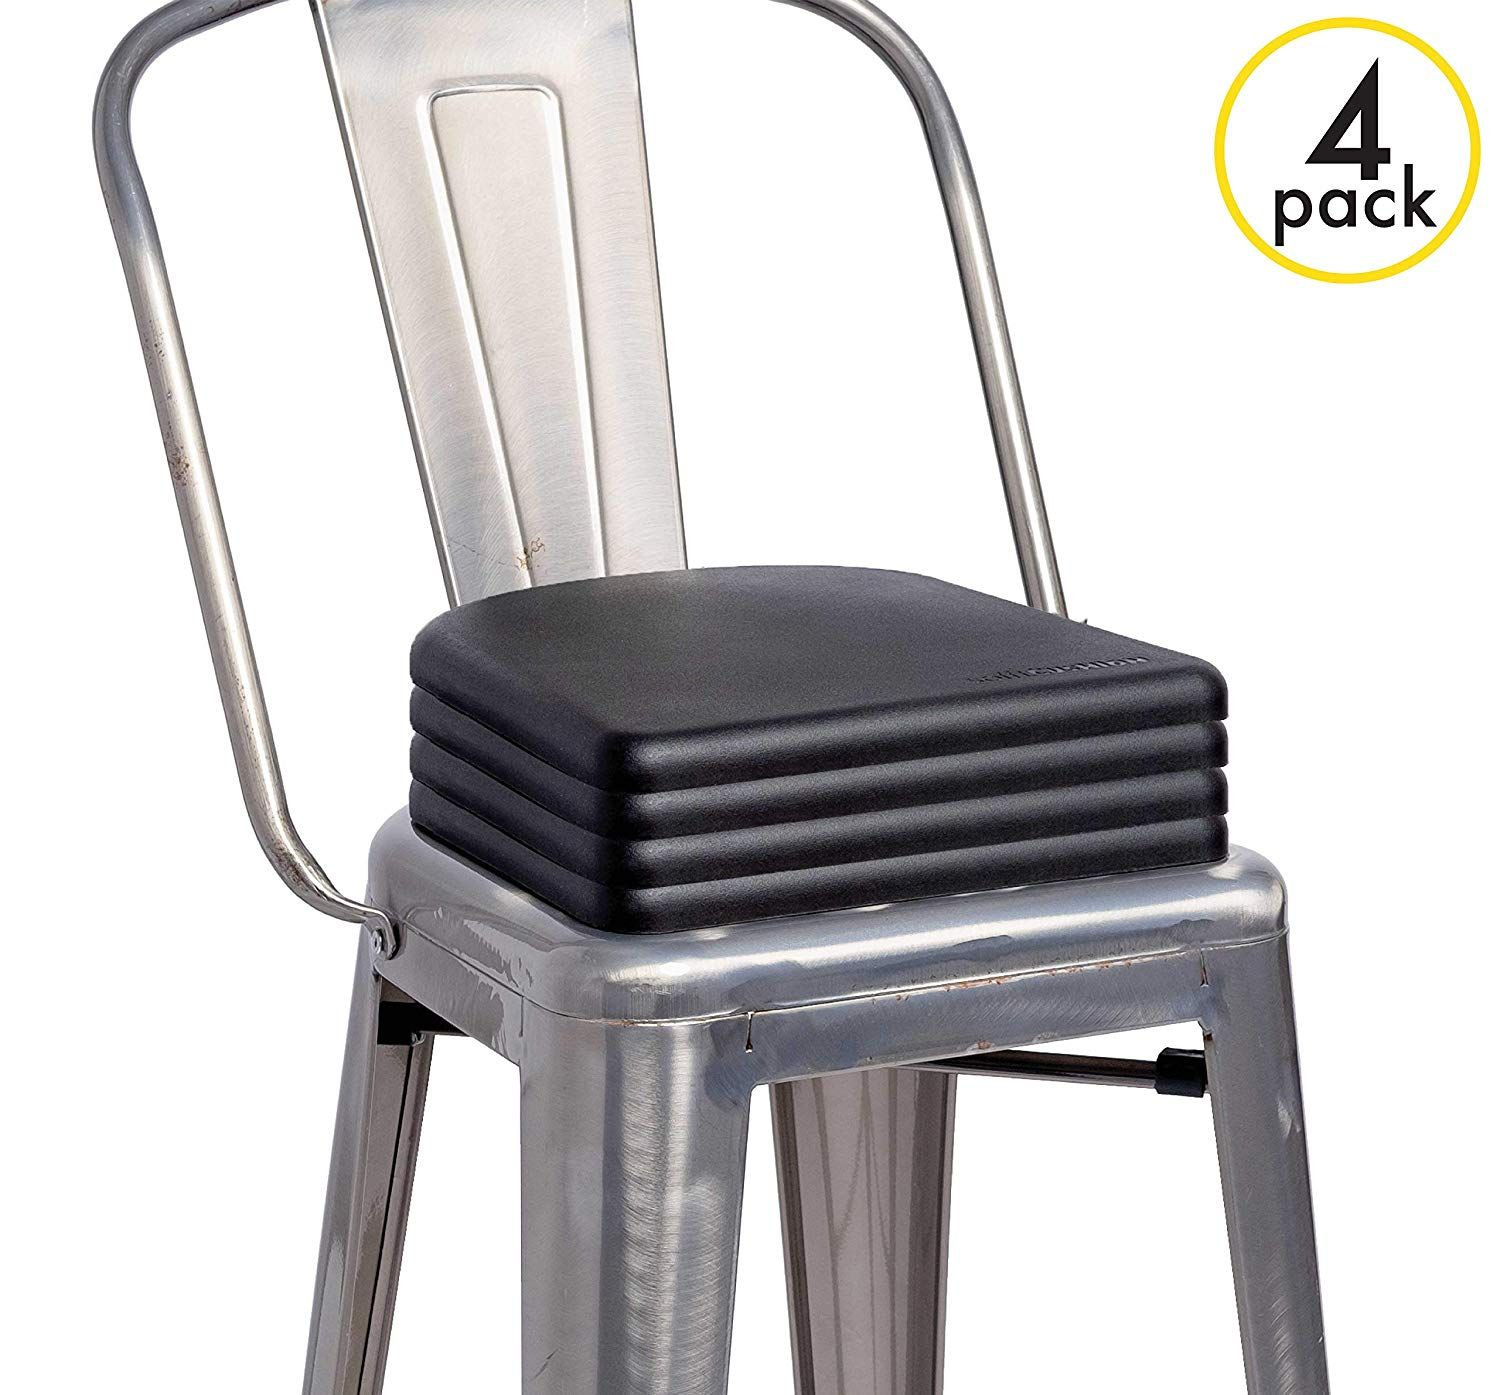 Amazon Com Sofft Cushion Rounded Seat Cushion For Metal Bar Stools